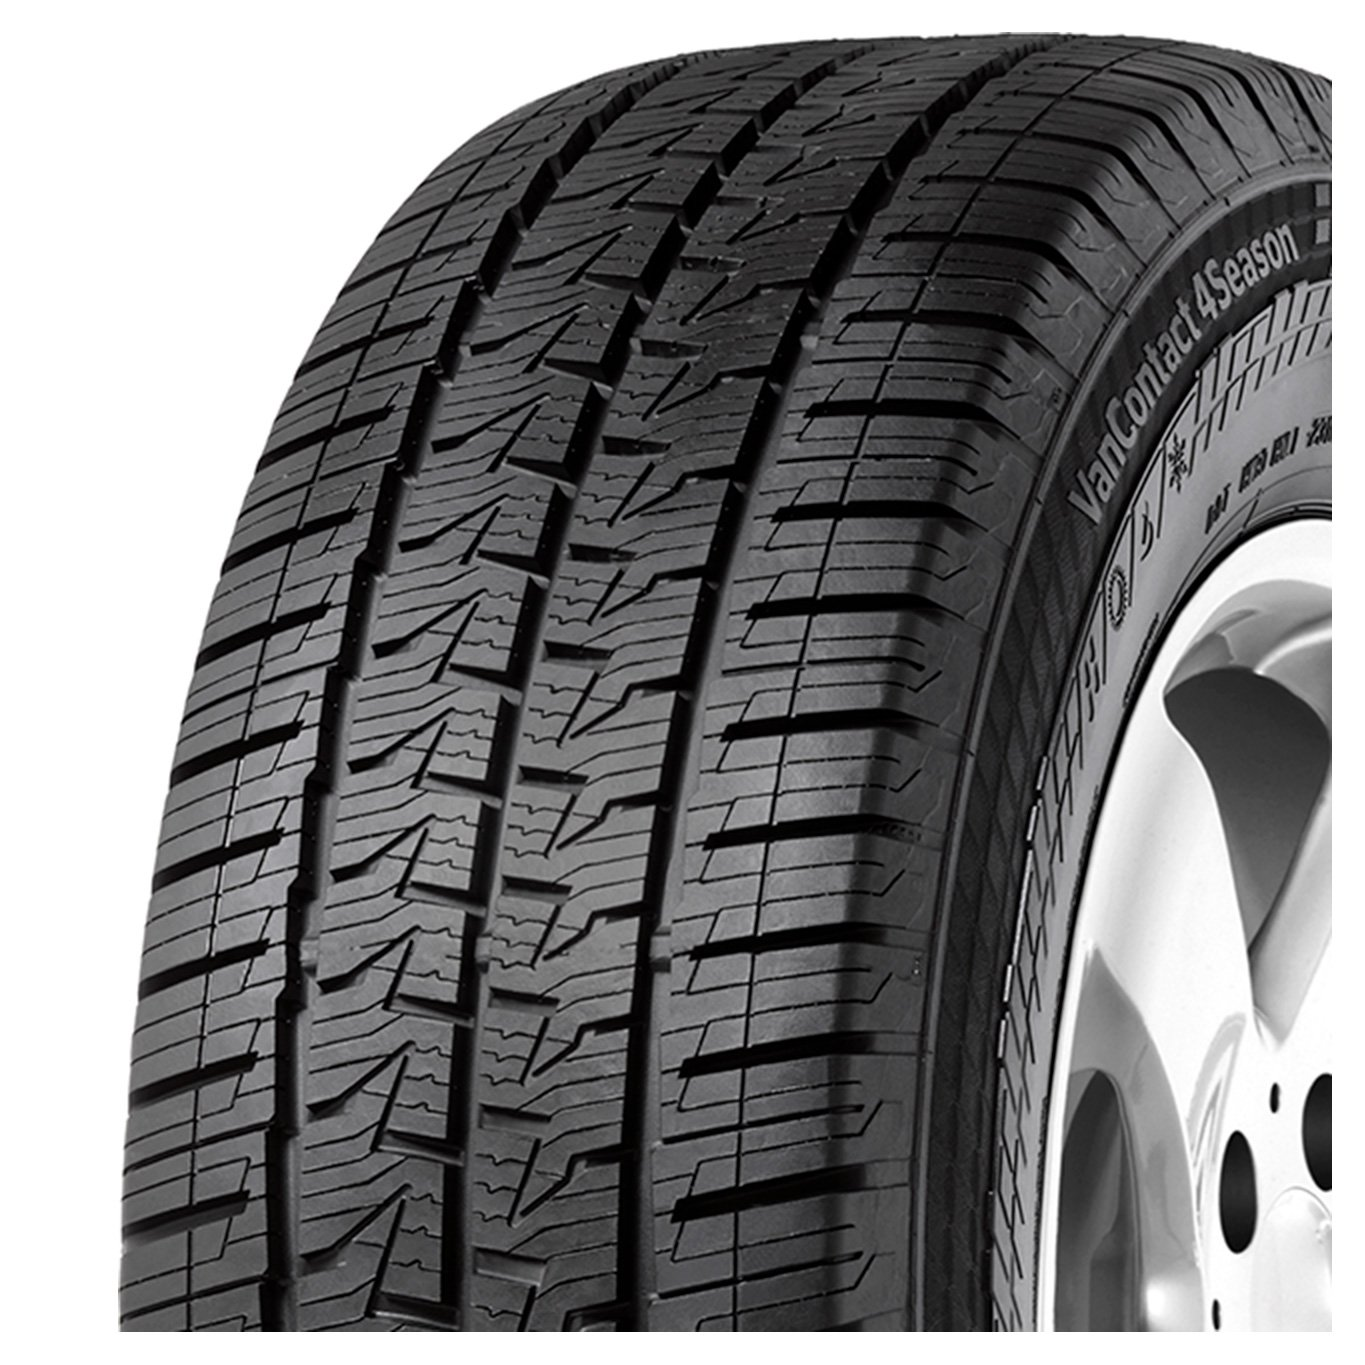 CONTINENTAL 205/65 R16-65/205/R16 107T - B/A/73dB - Tyres All-Season (Light Truck)